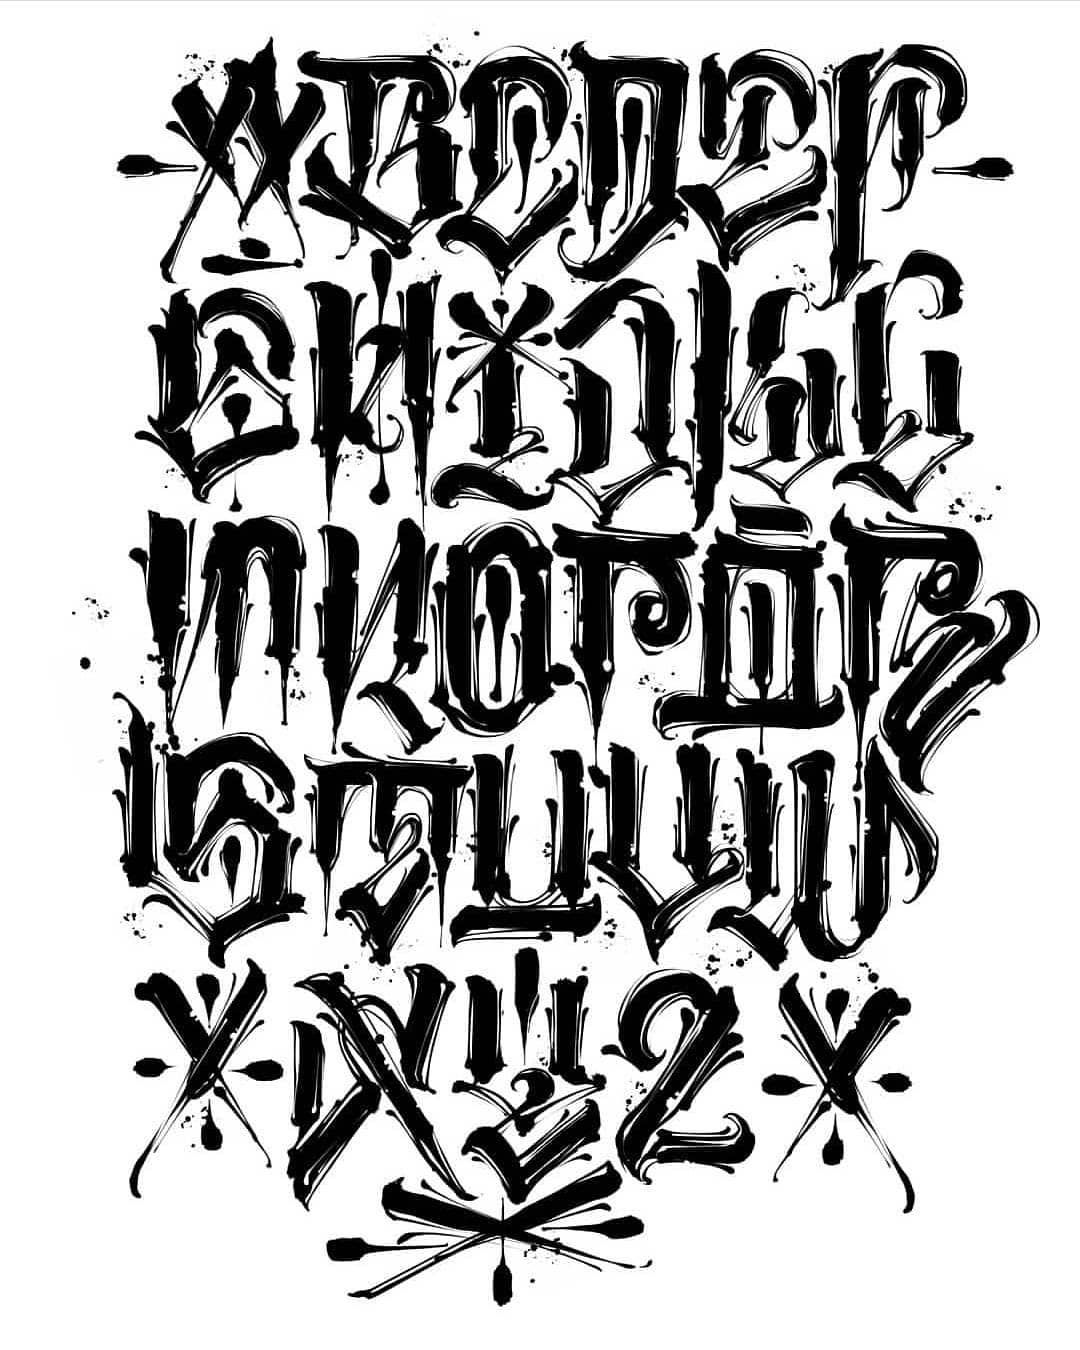 Got So Much Love Off This Alphabet So Many Saves Tattoo Lettering Alphabet Tattoo Fonts Alphabet Lettering Styles Alphabet